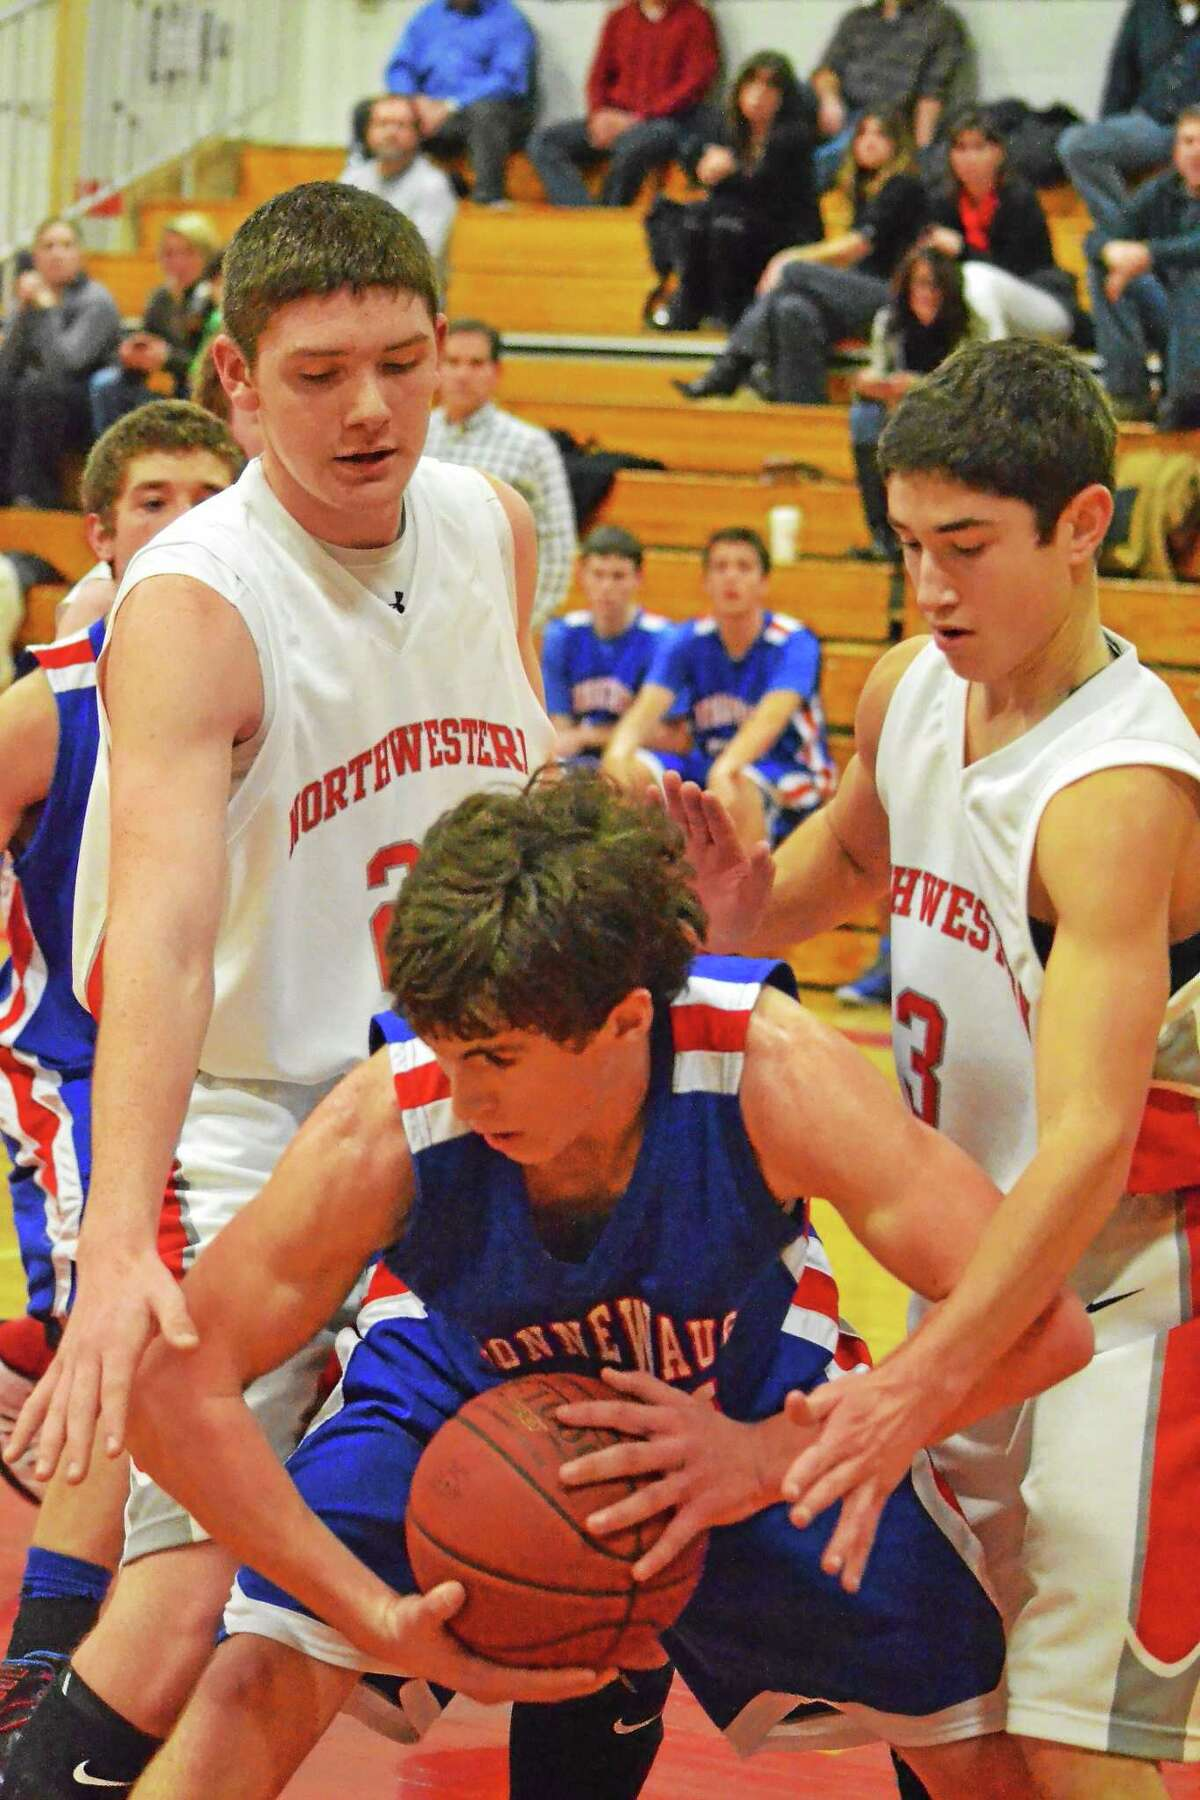 Northwestern's Steven McGrath (left) and Rich Persechino (right) trap Nonnewaug's Ryan Gunnoud during the Highlanders 61-57 overtime win.